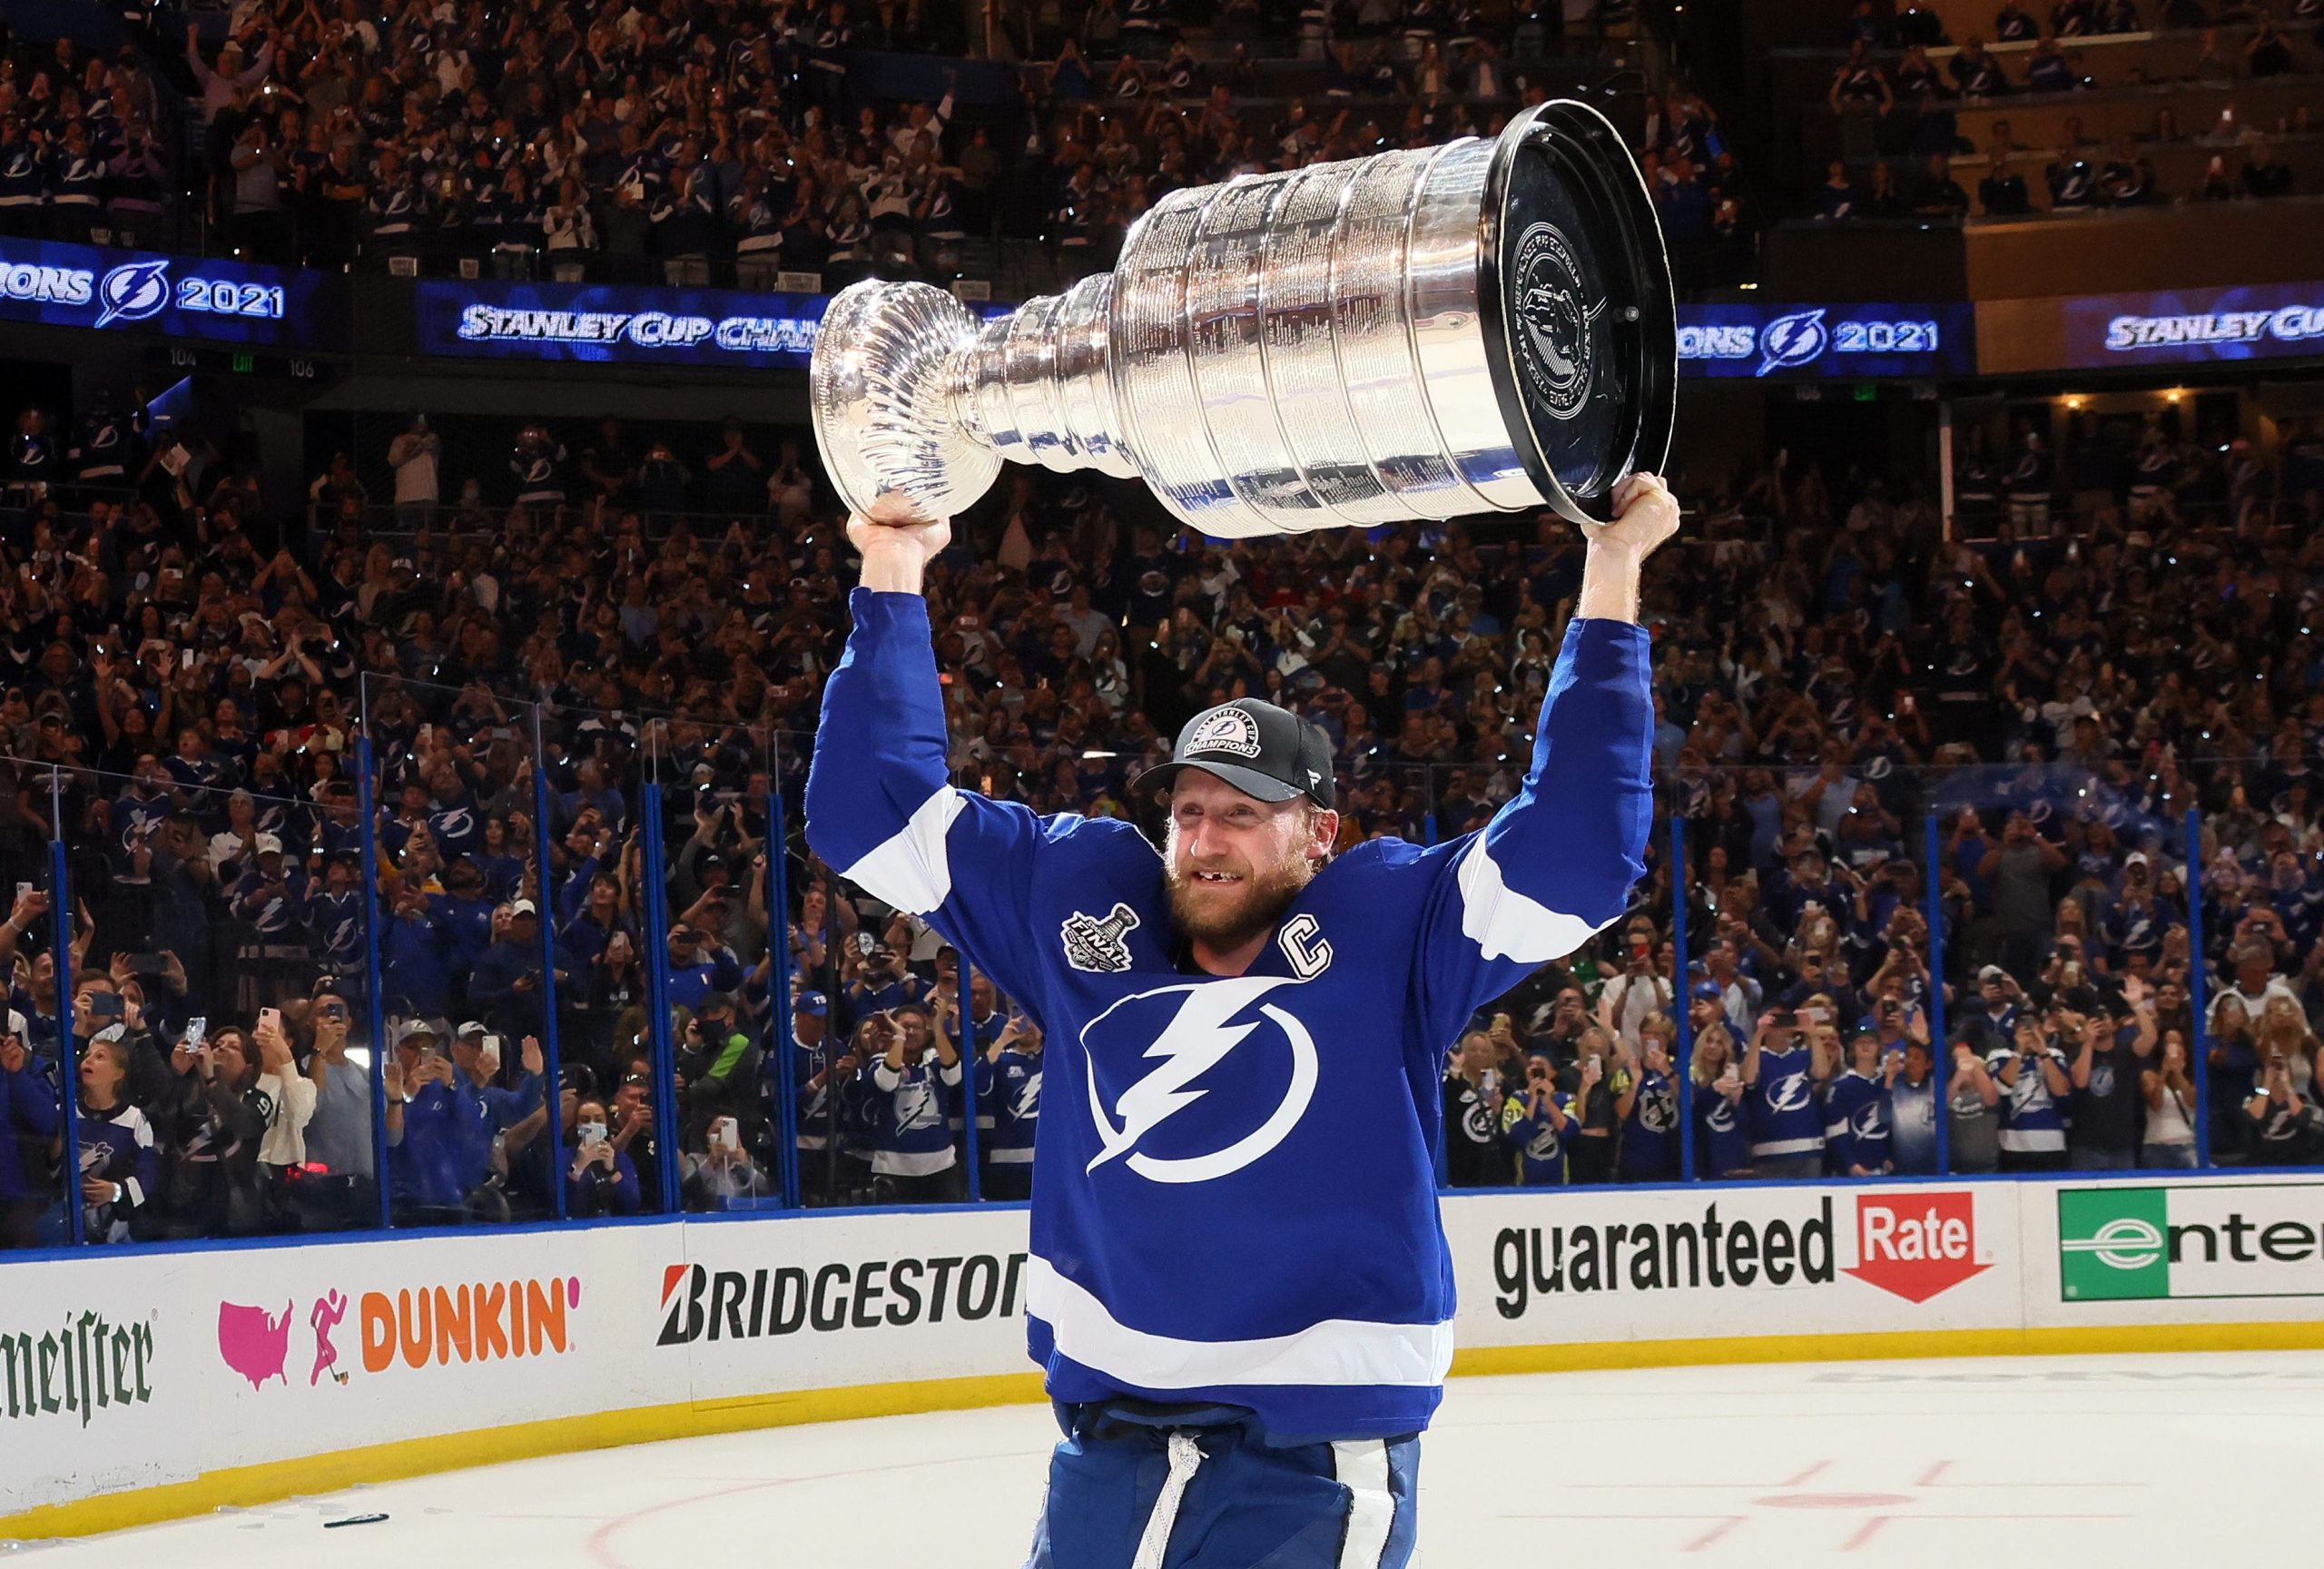 Tampa Bay Lightning Make History With Stanley Cup Win